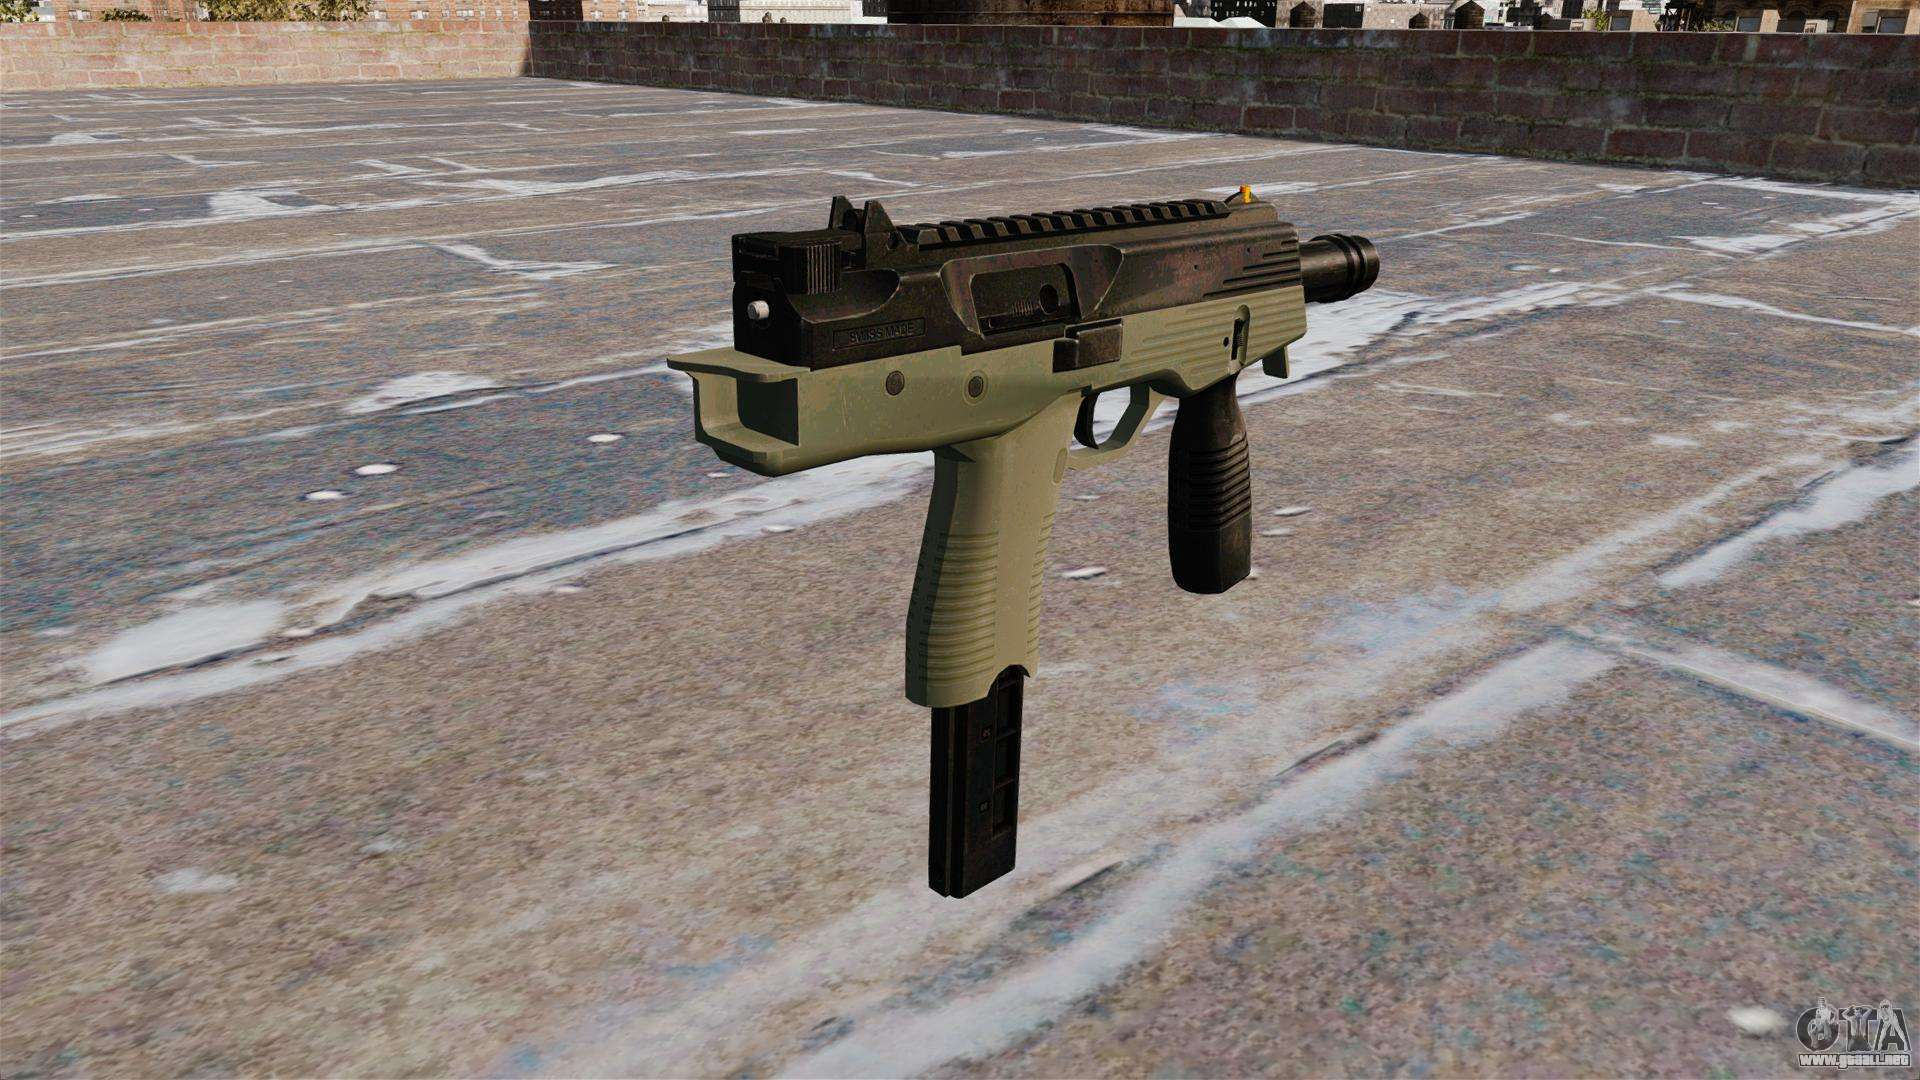 Evil 4 guide weapon and character tmp steyr tmp 4 bp blogspot com